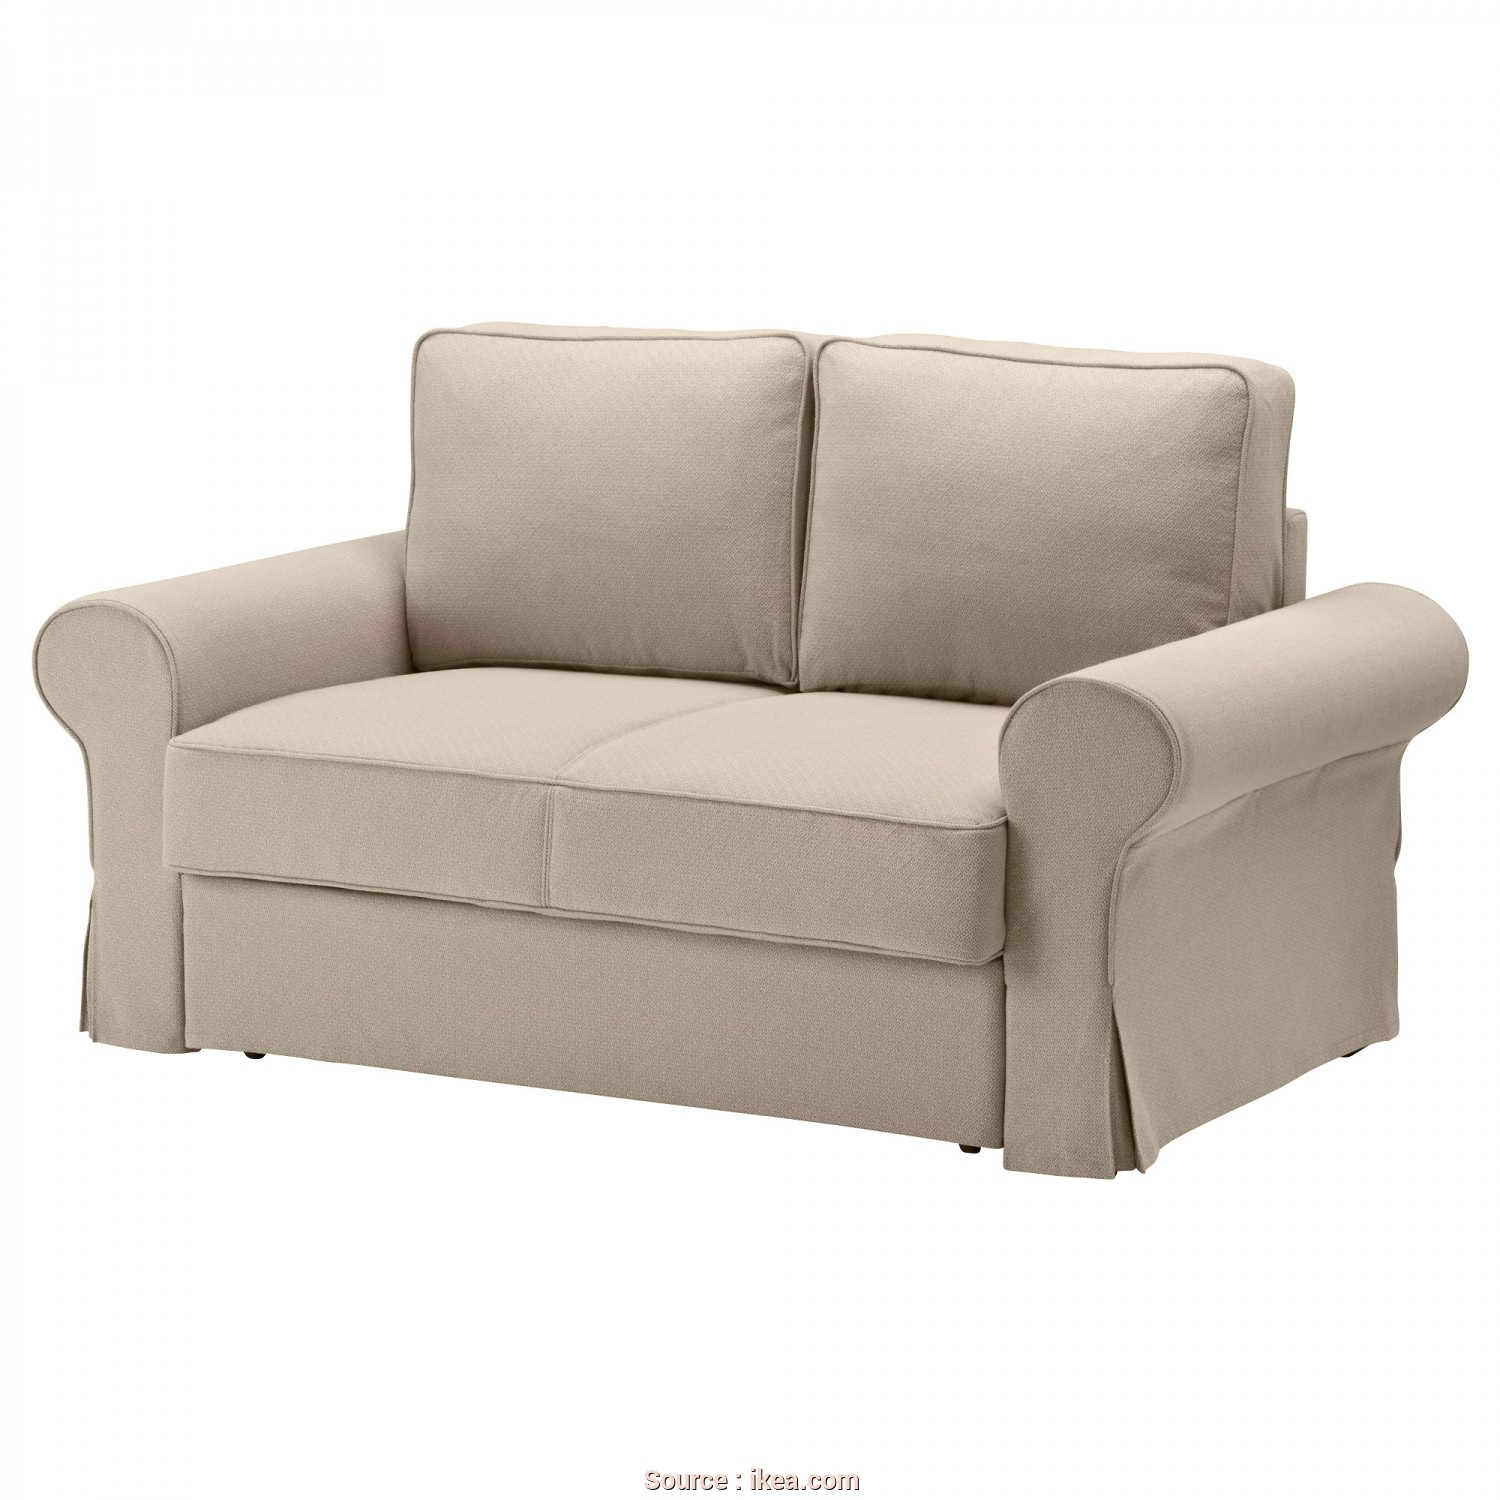 Ikea Backabro Test, A Buon Mercato BACKABRO Two-Seat Sofa-Bed Hylte Beige